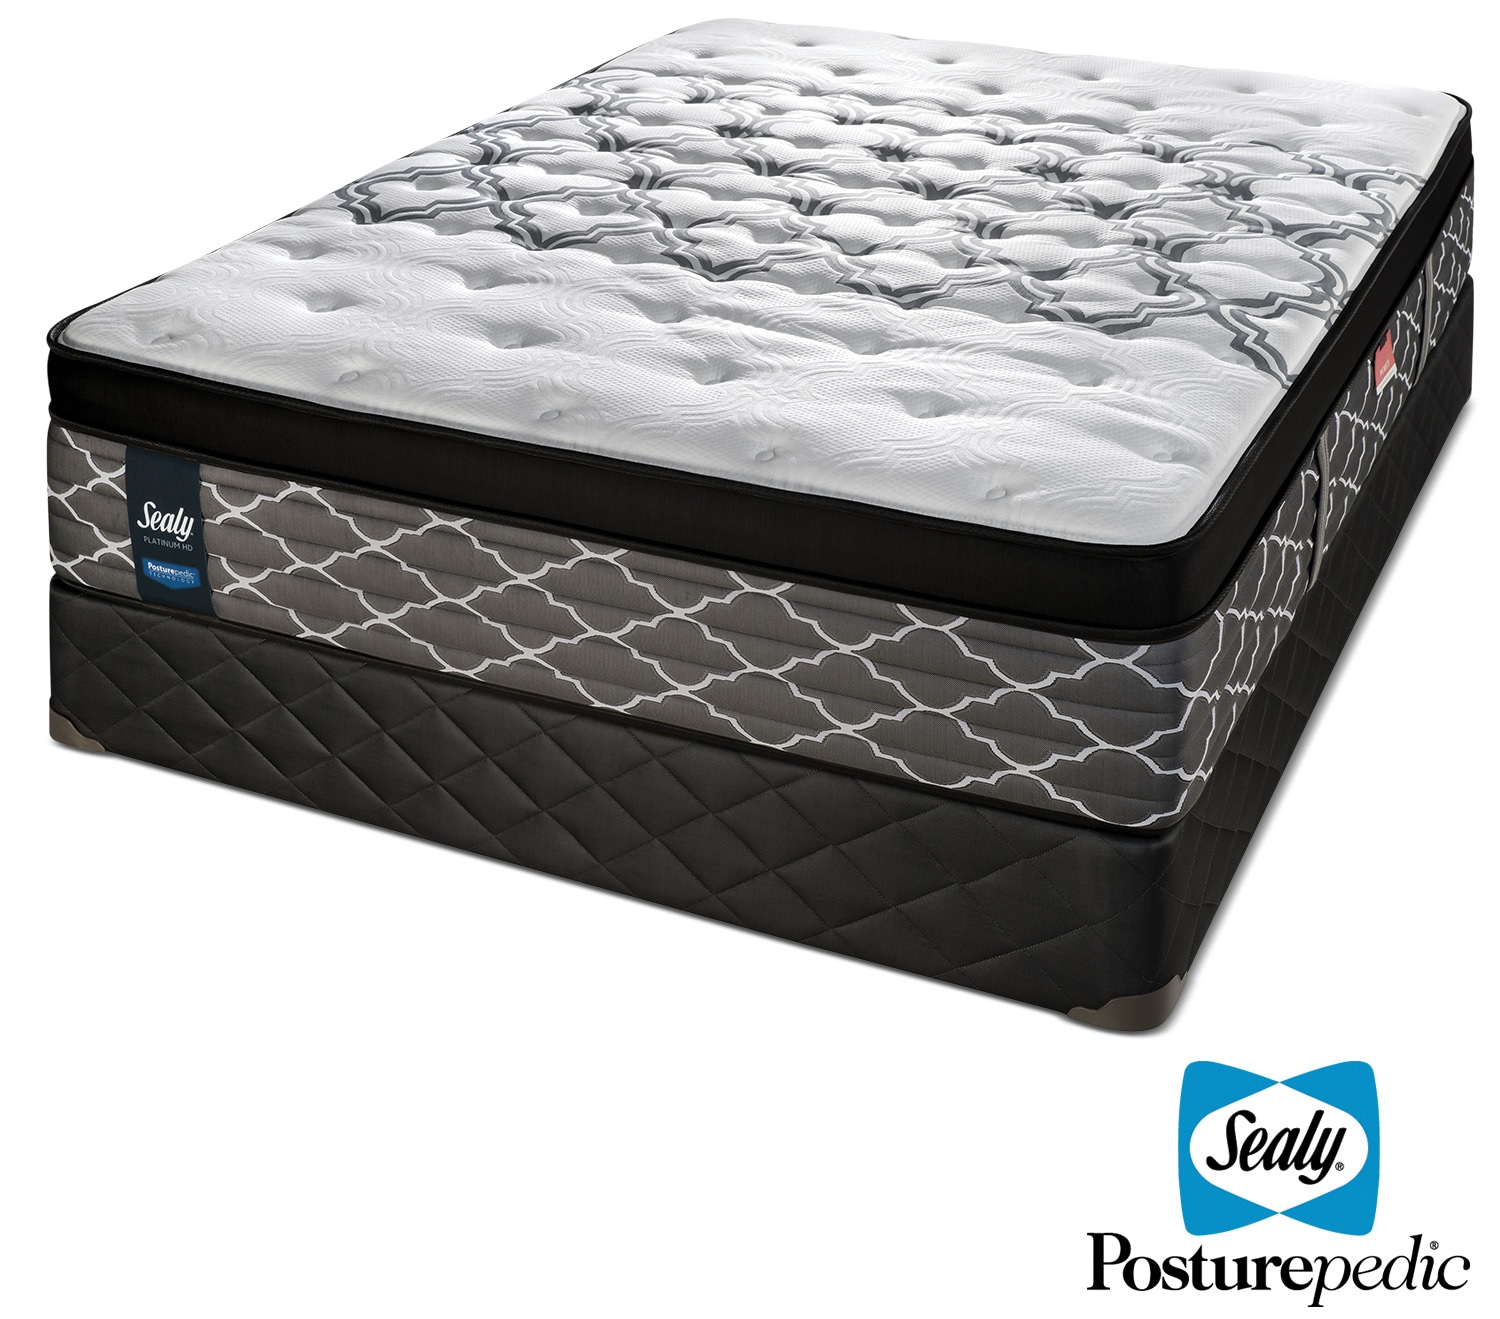 Sealy dreamy night hybrid firm full mattress and boxspring set leon 39 s Cheapest queen mattress